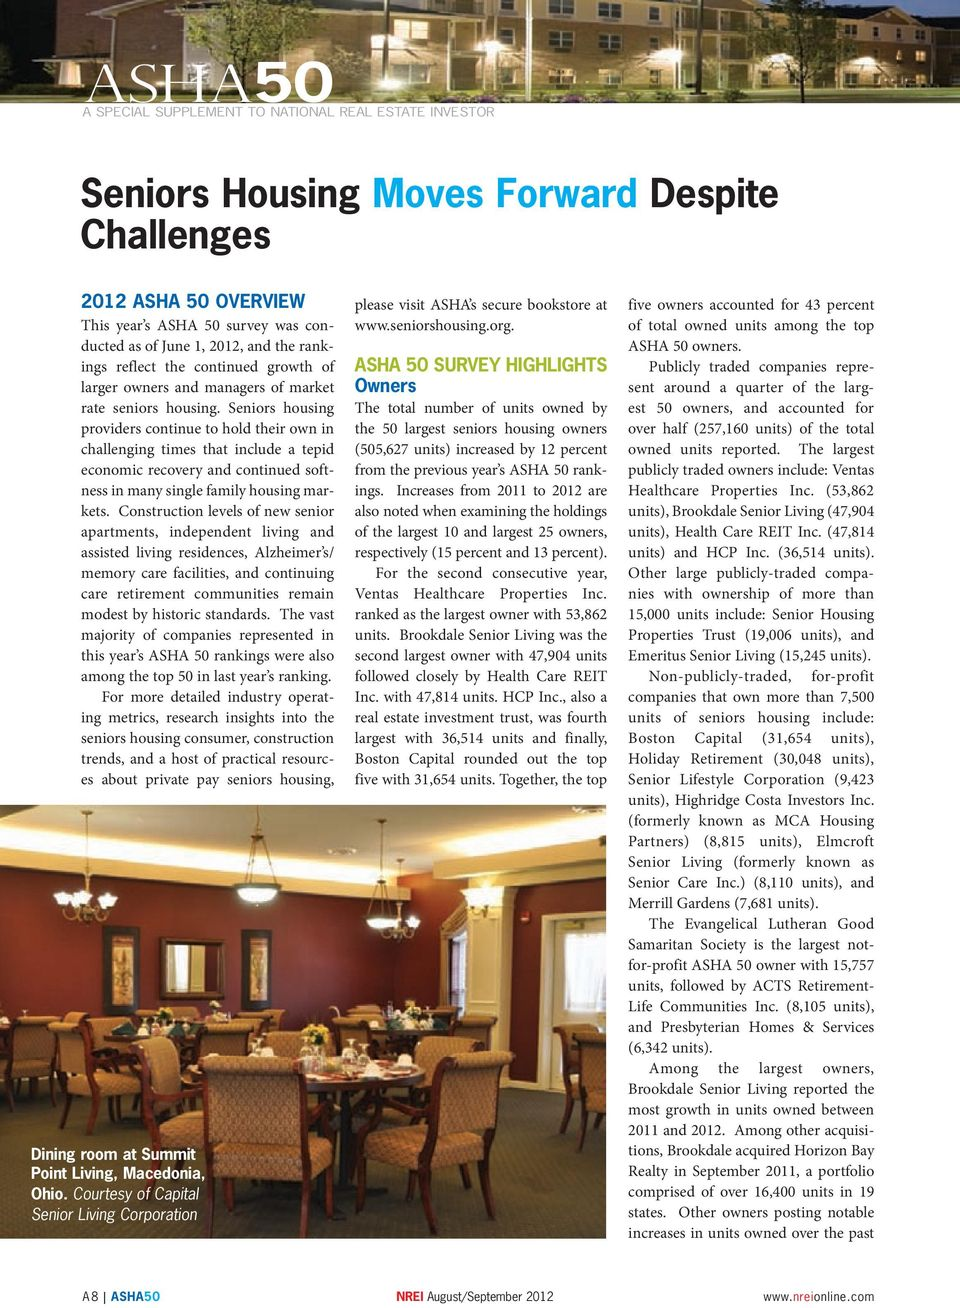 Seniors housing providers continue to hold their own in challenging times that include a tepid economic recovery and continued softness in many single family housing markets.